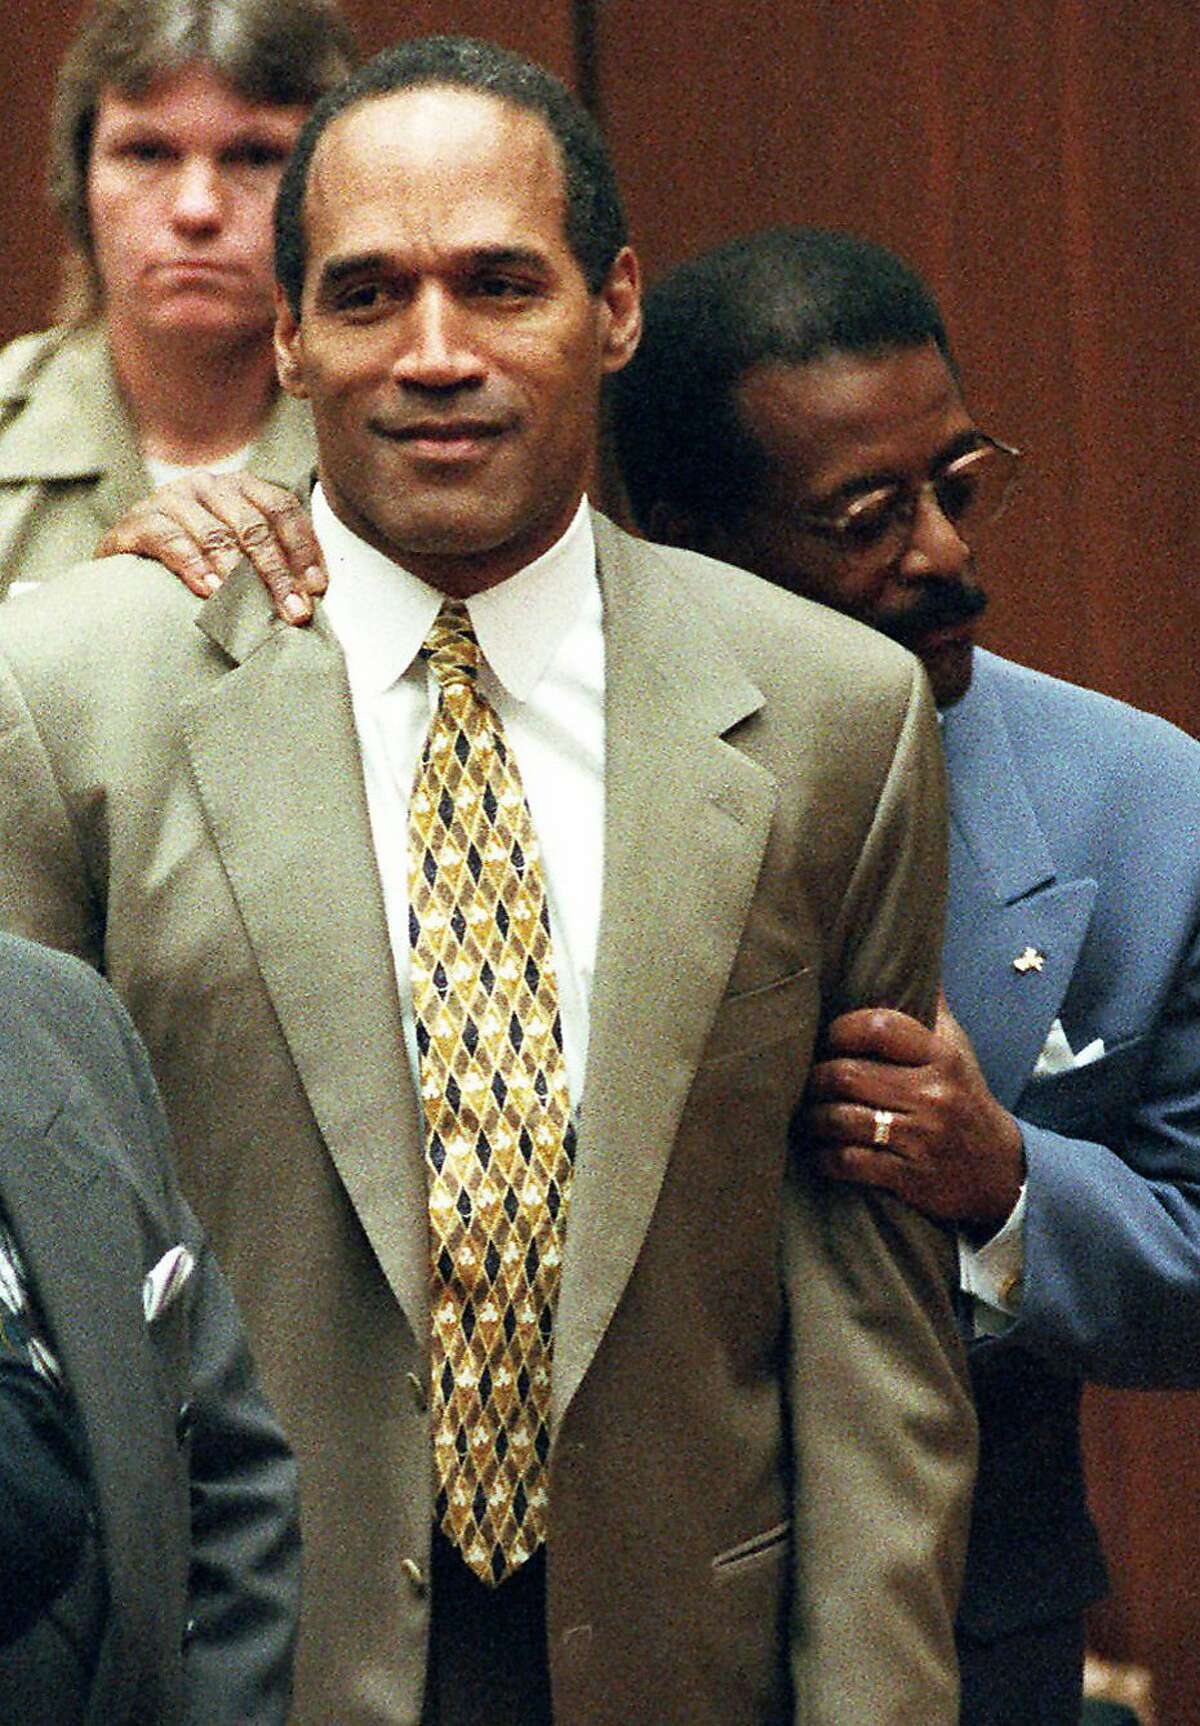 FILE - In this Oct. 3, 1995 file photo, attorney Johnnie Cochran Jr. holds onto O.J. Simpson as the not guilty verdict is read in a Los Angeles courtroom. Simpson's former manager has been ordered by a Los Angeles County judge Monday, June 15, 2009, to keep the former football star's so-called acquittal suit in storage until it is determined who rightfully owns it. (AP Photo/Pool, Myung J. Chun)